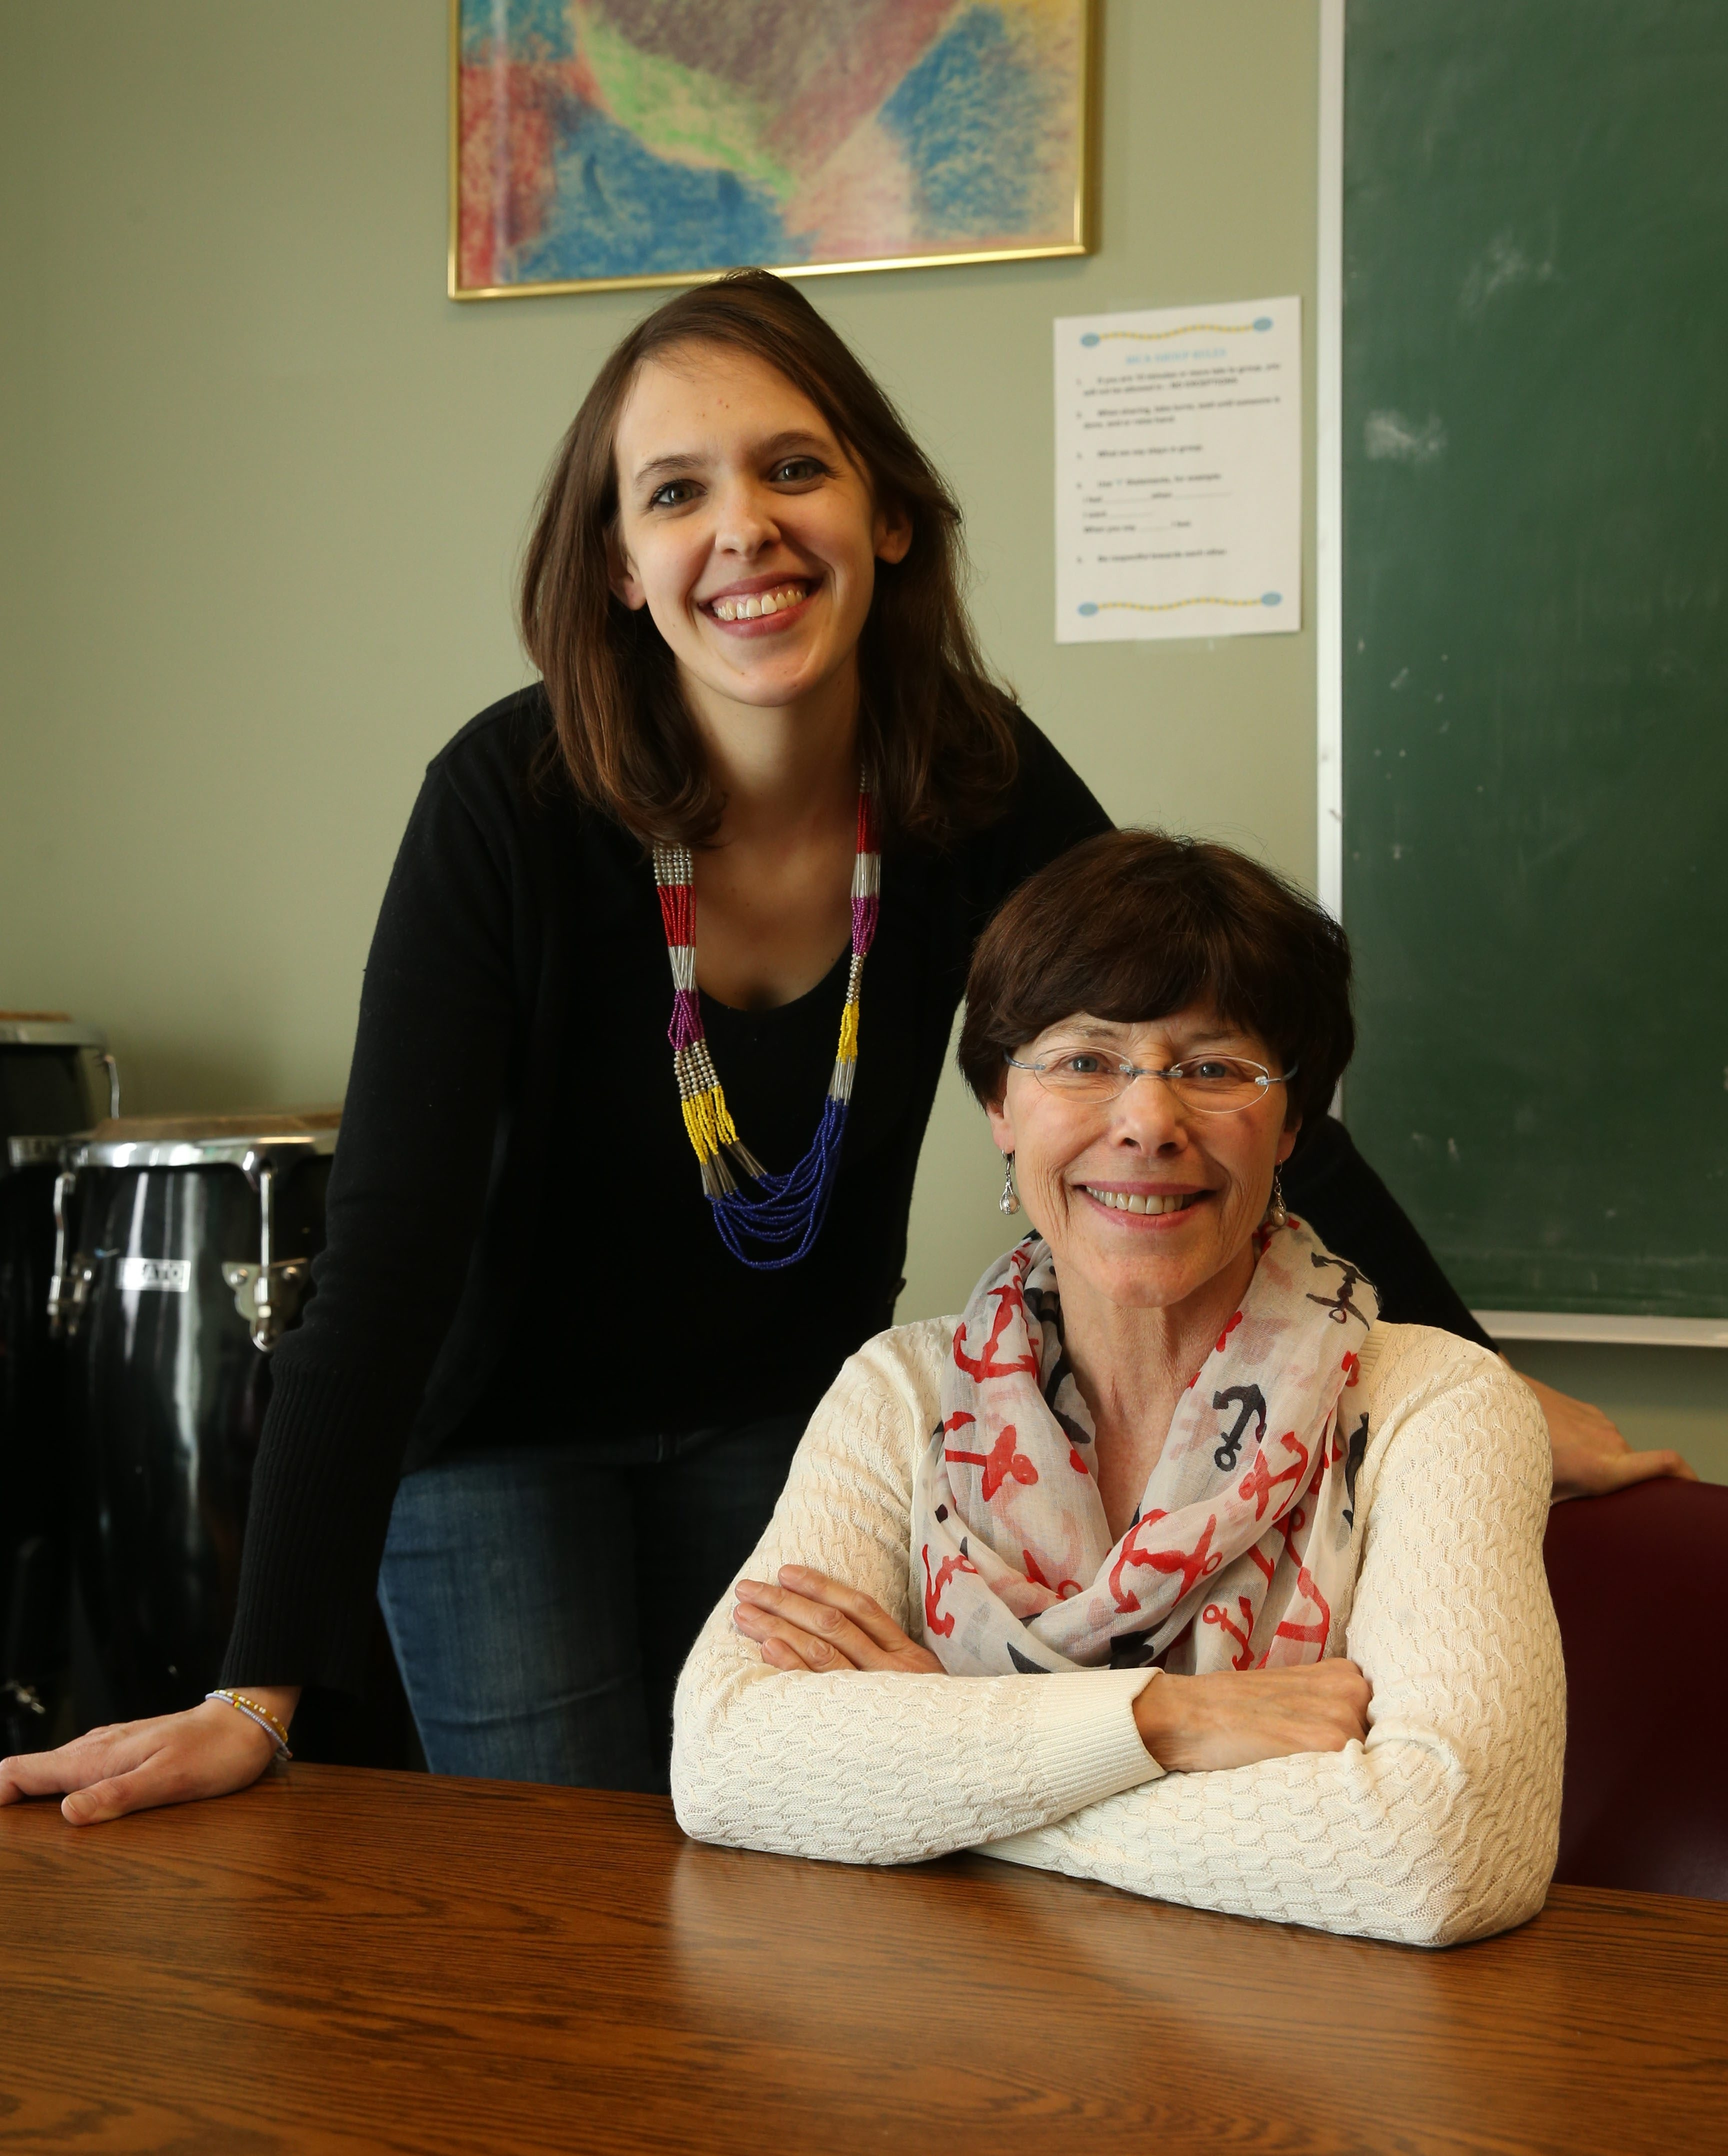 """""""As a peer, if you were to be in a war-torn situation and had to go to another country you'd want to be treated with respect, as an equal. """" – Jessica Scates, left, with Dr. Kim Griswold, on what she wishes Western New Yorkers understood about the refugee population."""